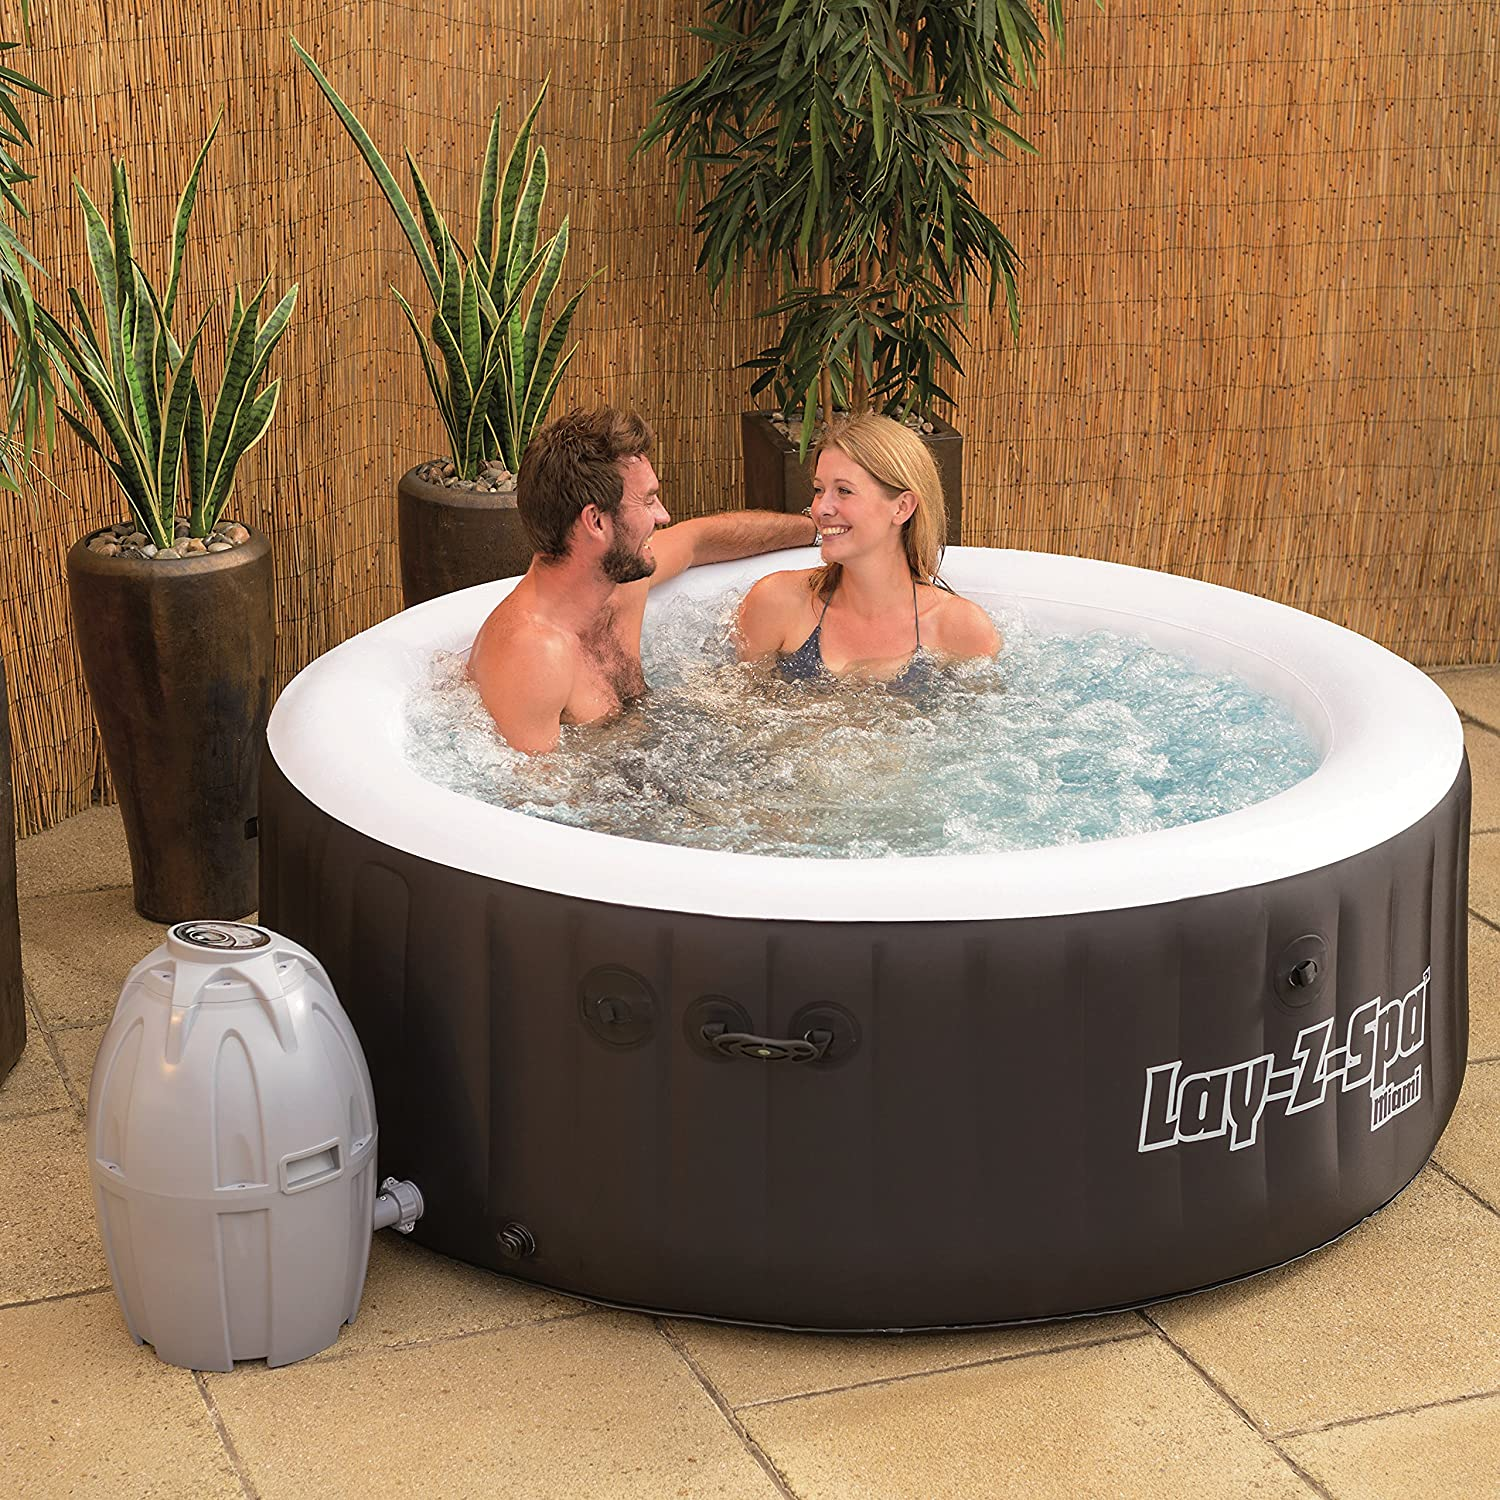 The Best Outdoor Hot Tubs For Your Garden: Reviews & Buying Guide 2